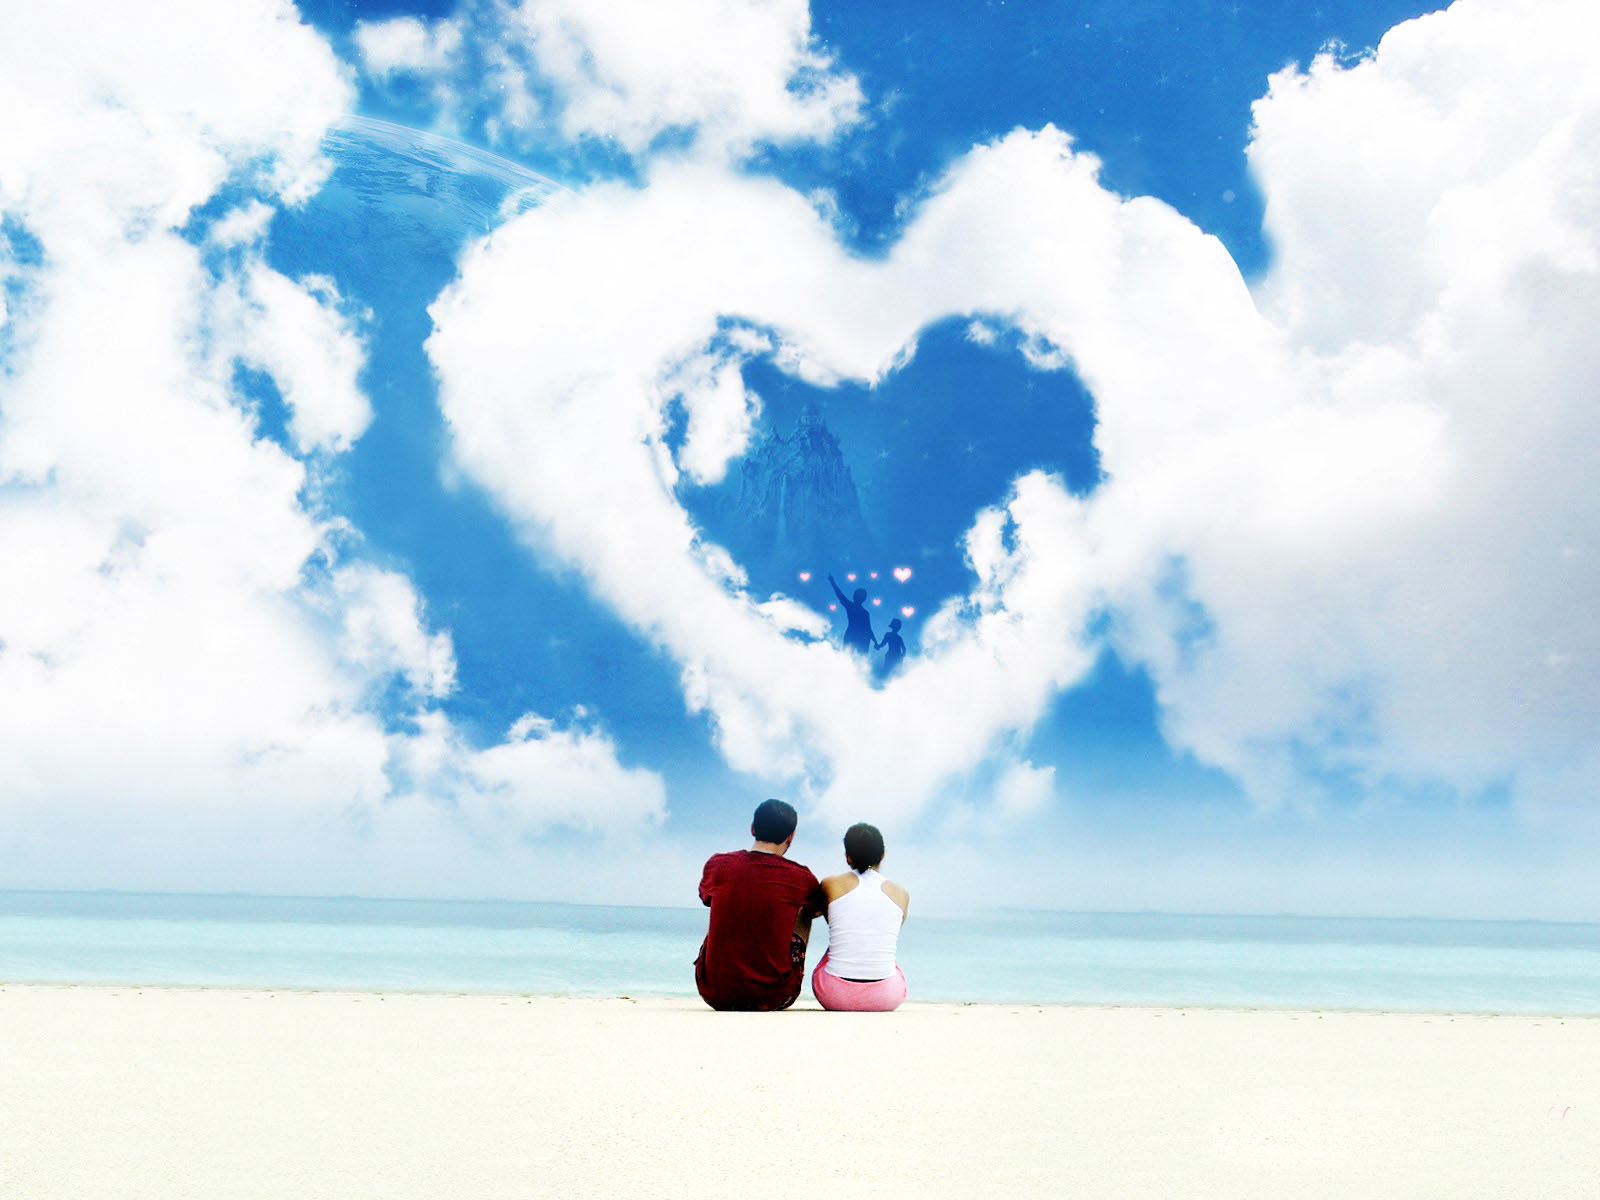 Wallpapers a new born love wallpapers for 2 lovers pic